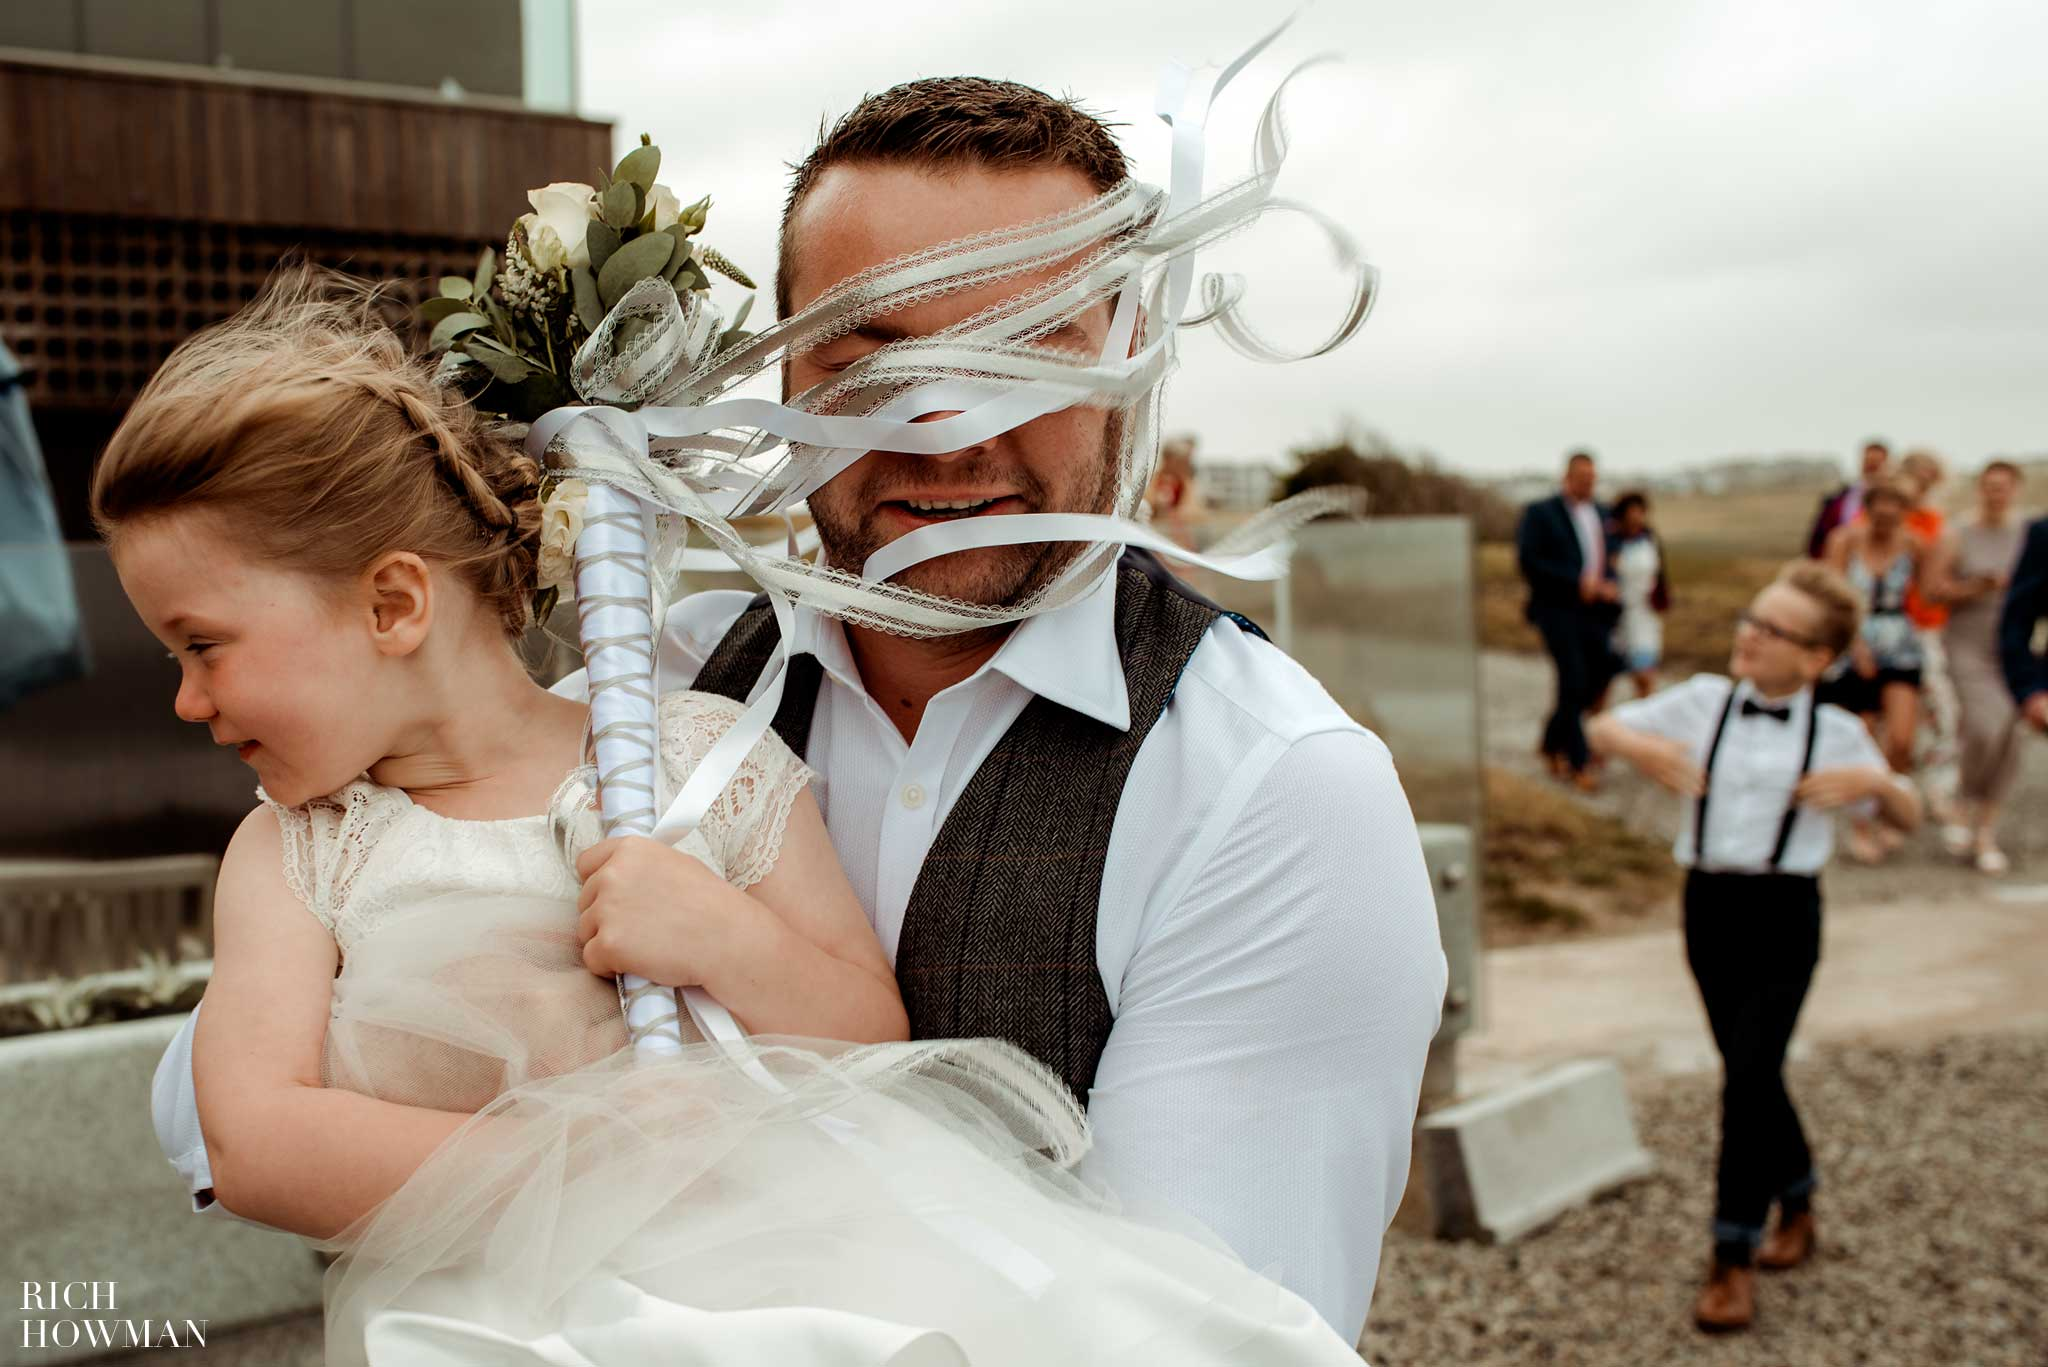 Headland Hotel Wedding Photographer in Newquay 7